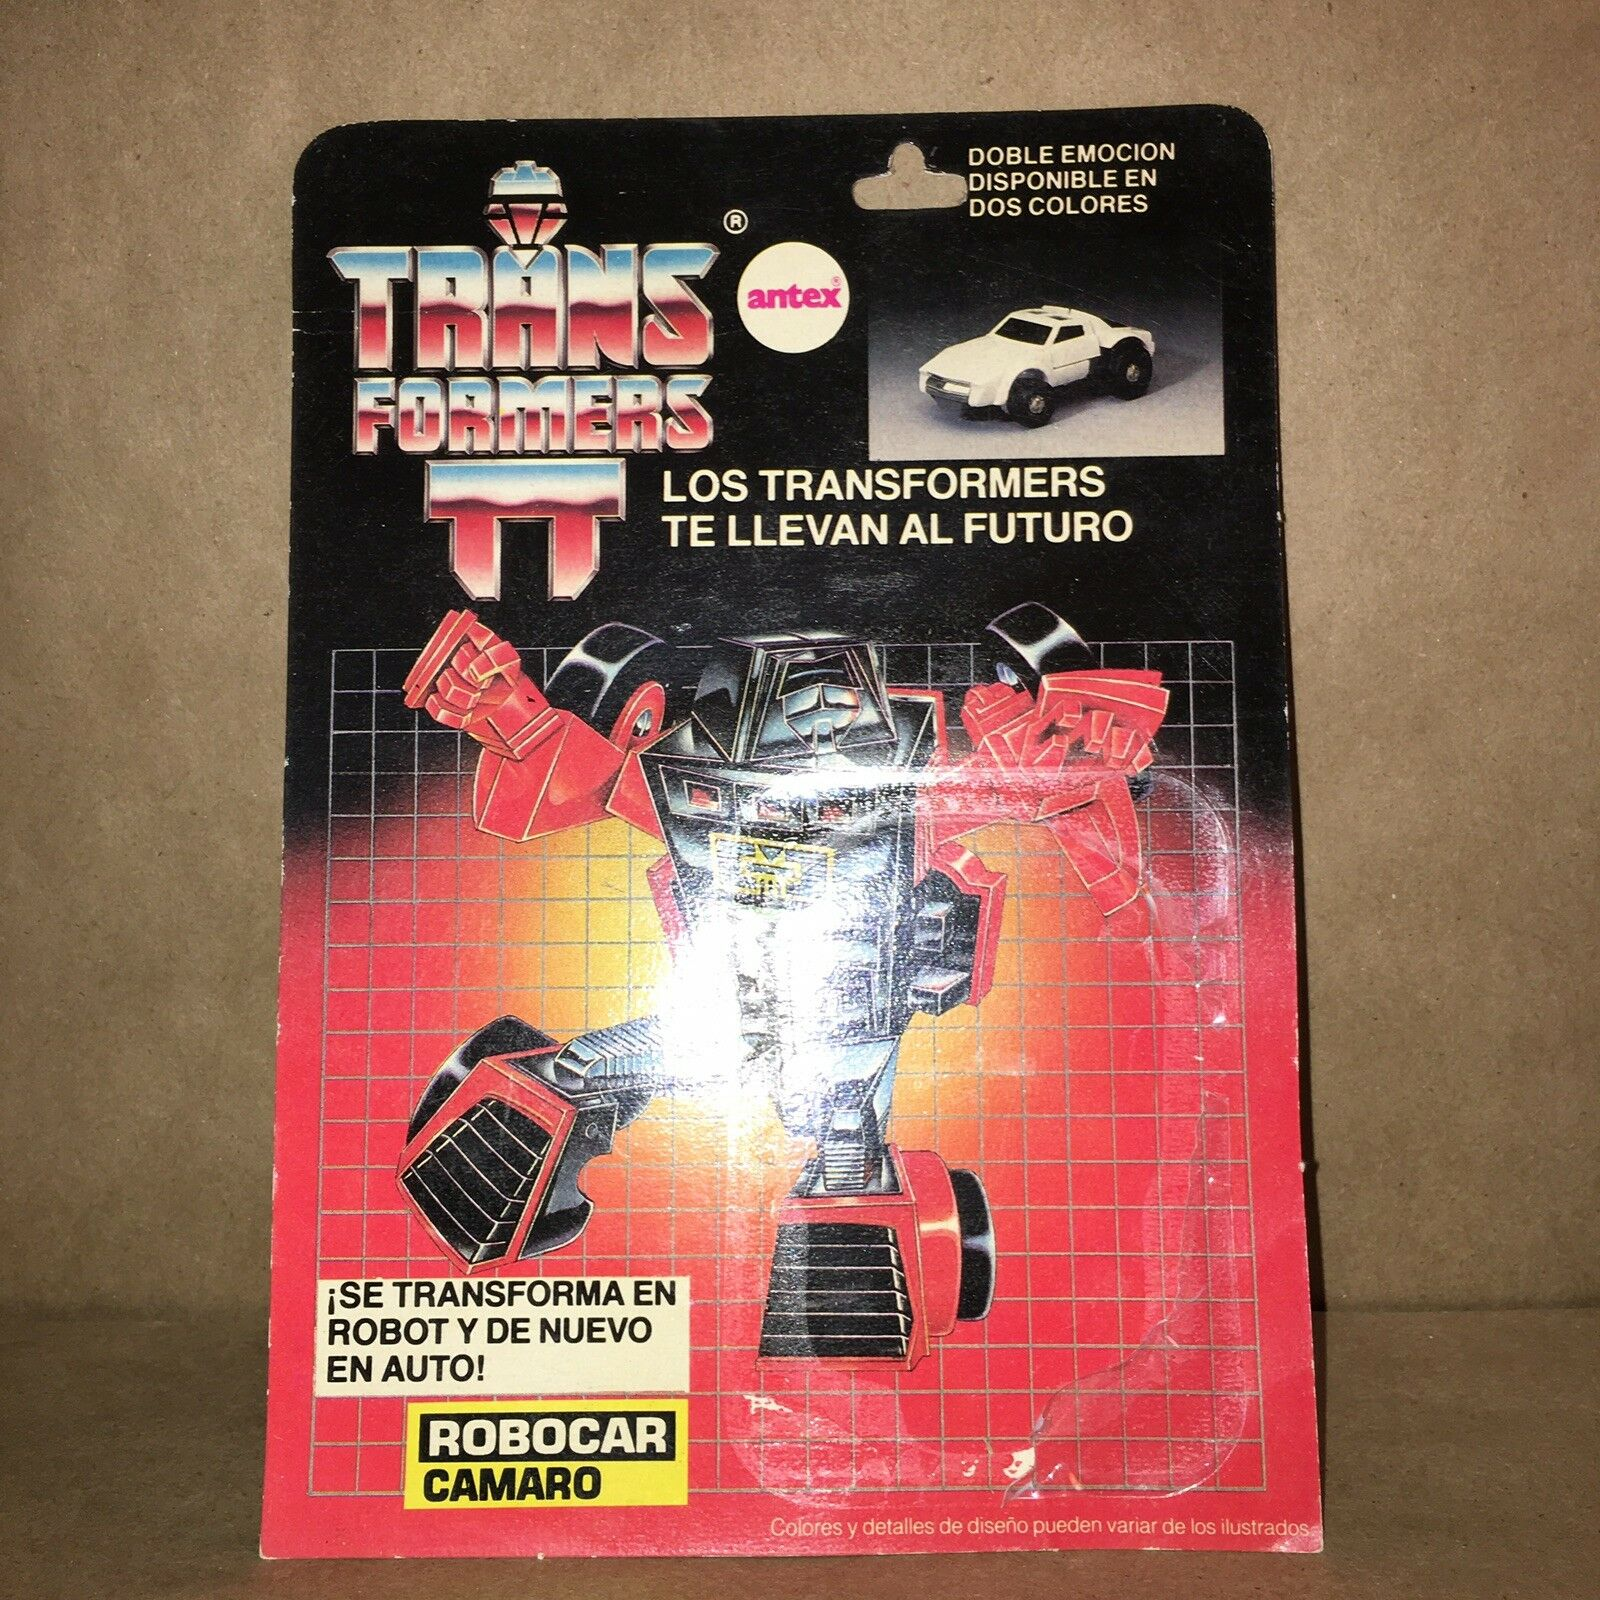 VTG Argentina Hasbro Transformers Throttlebot Camaro 1982 Action Figure Card